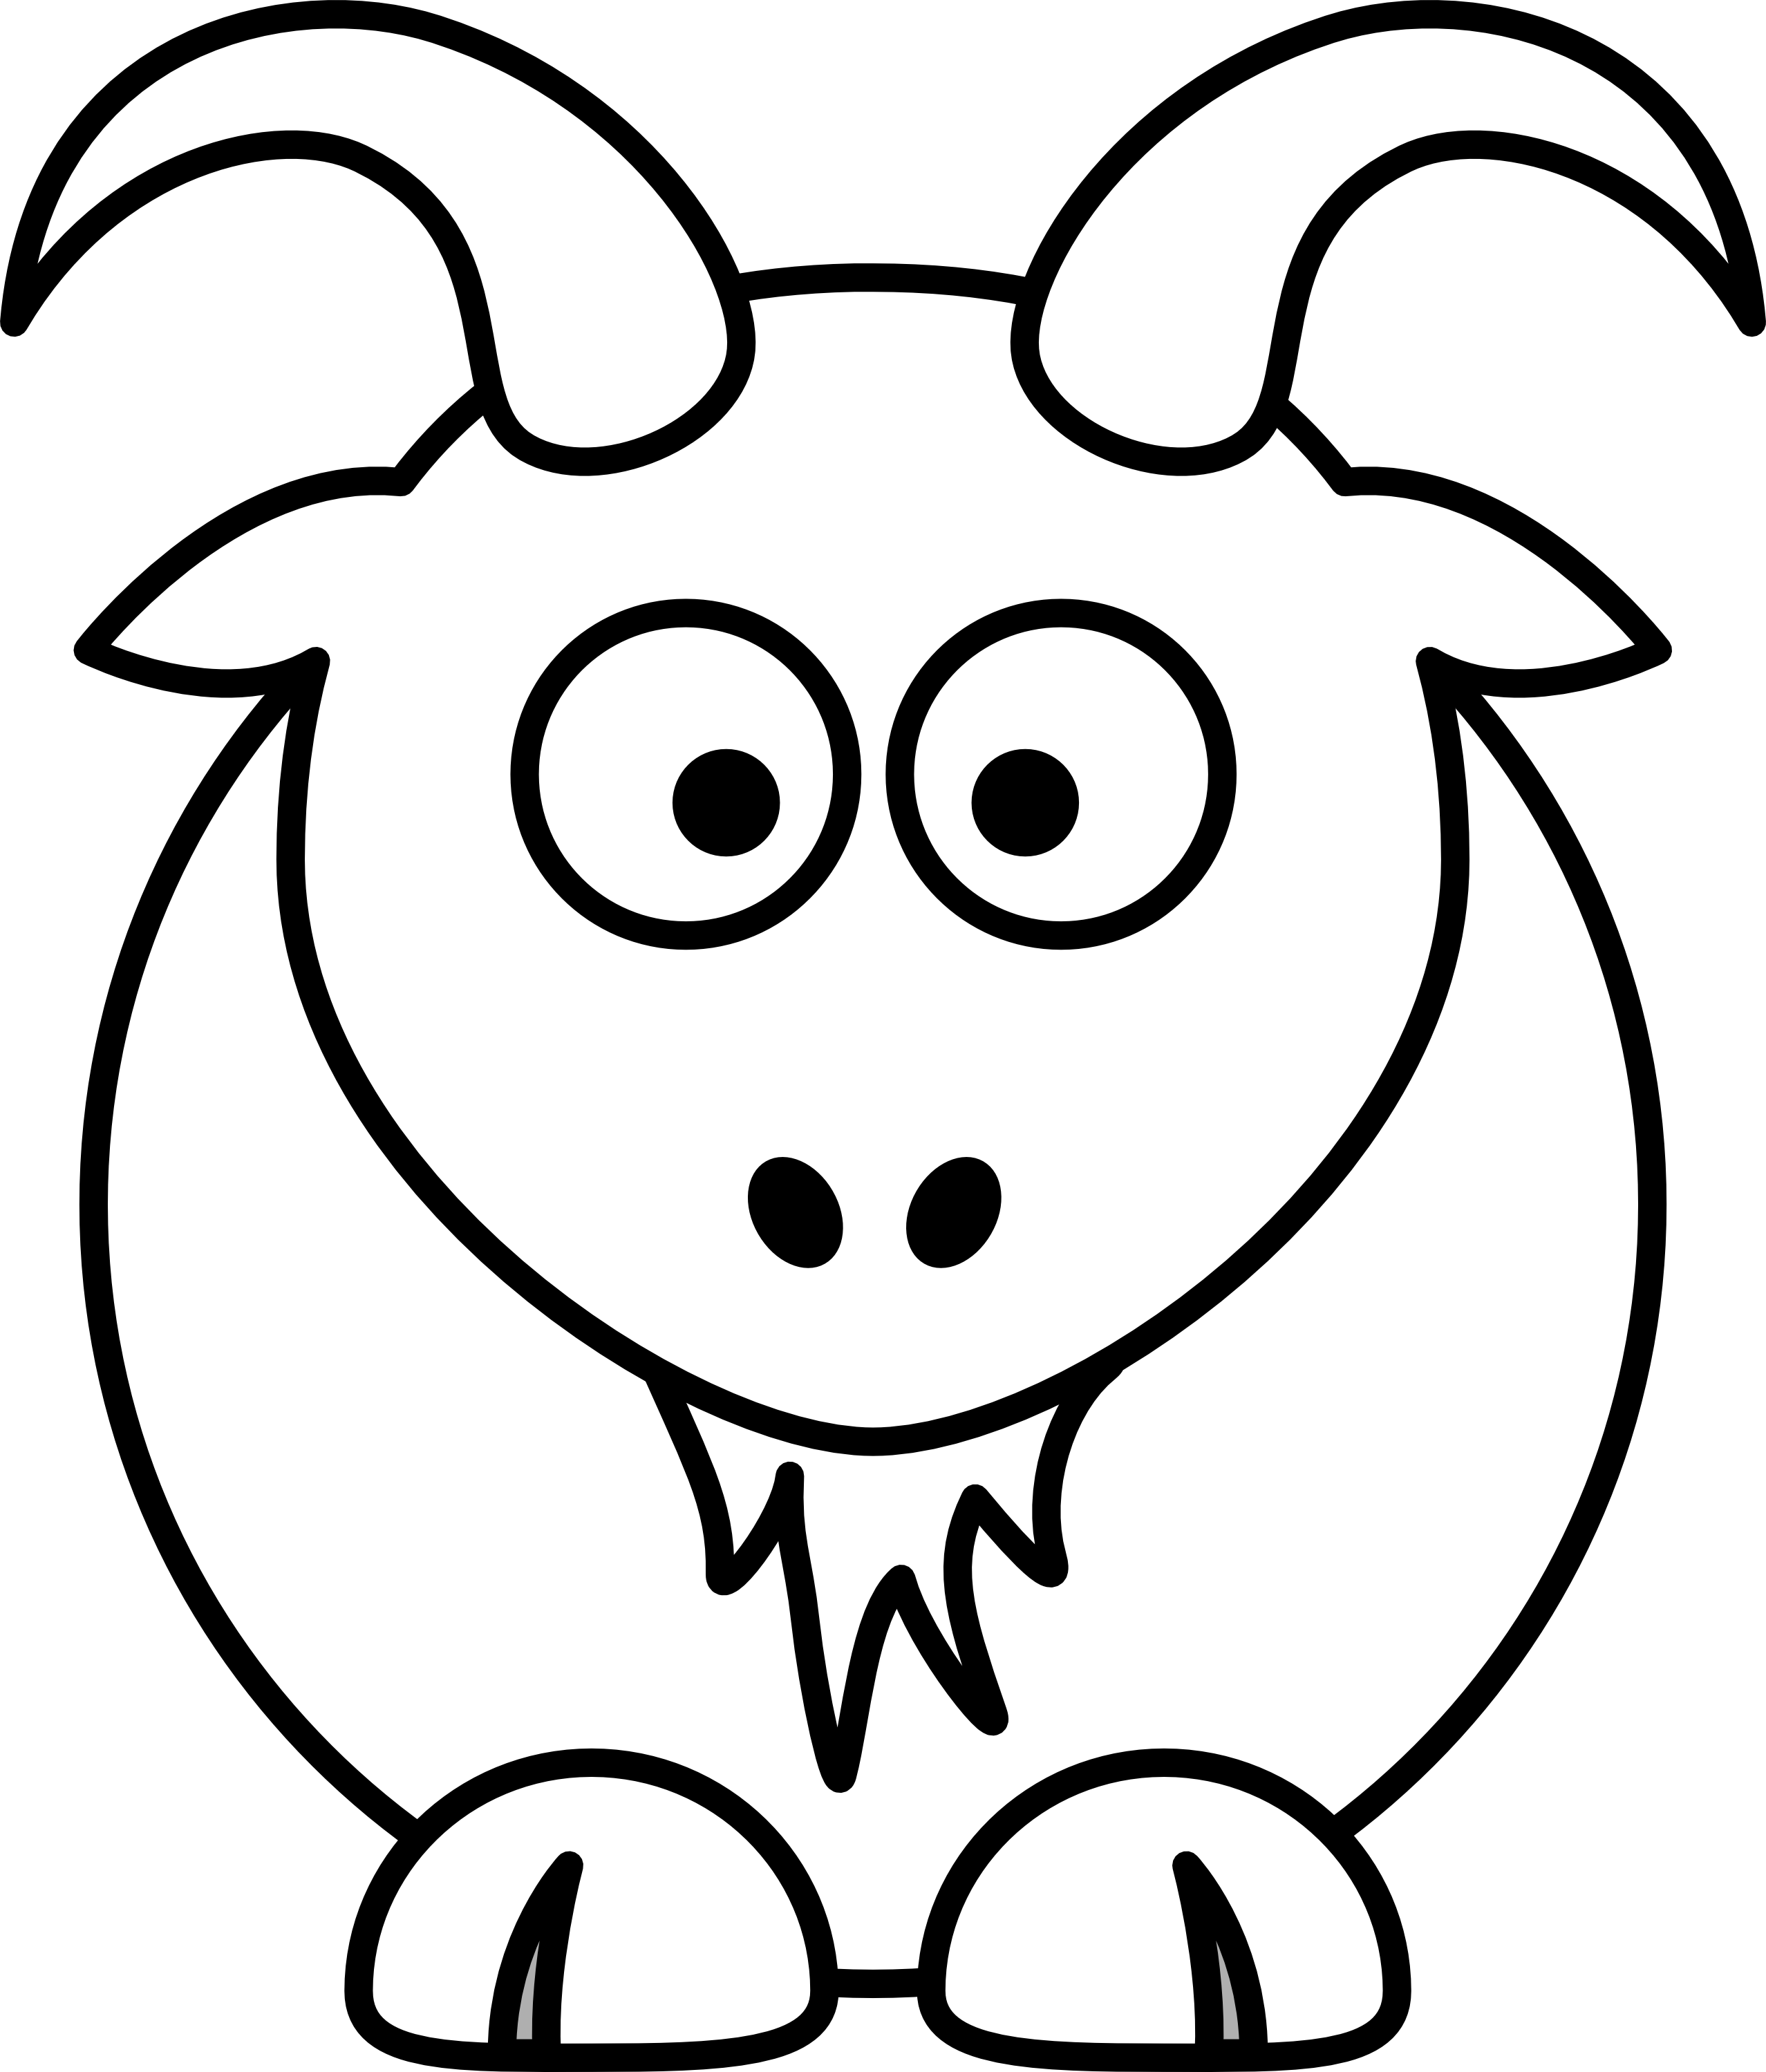 Animal clipart black and whtie vector black and white stock Free Animal Black And White, Download Free Clip Art, Free Clip Art ... vector black and white stock